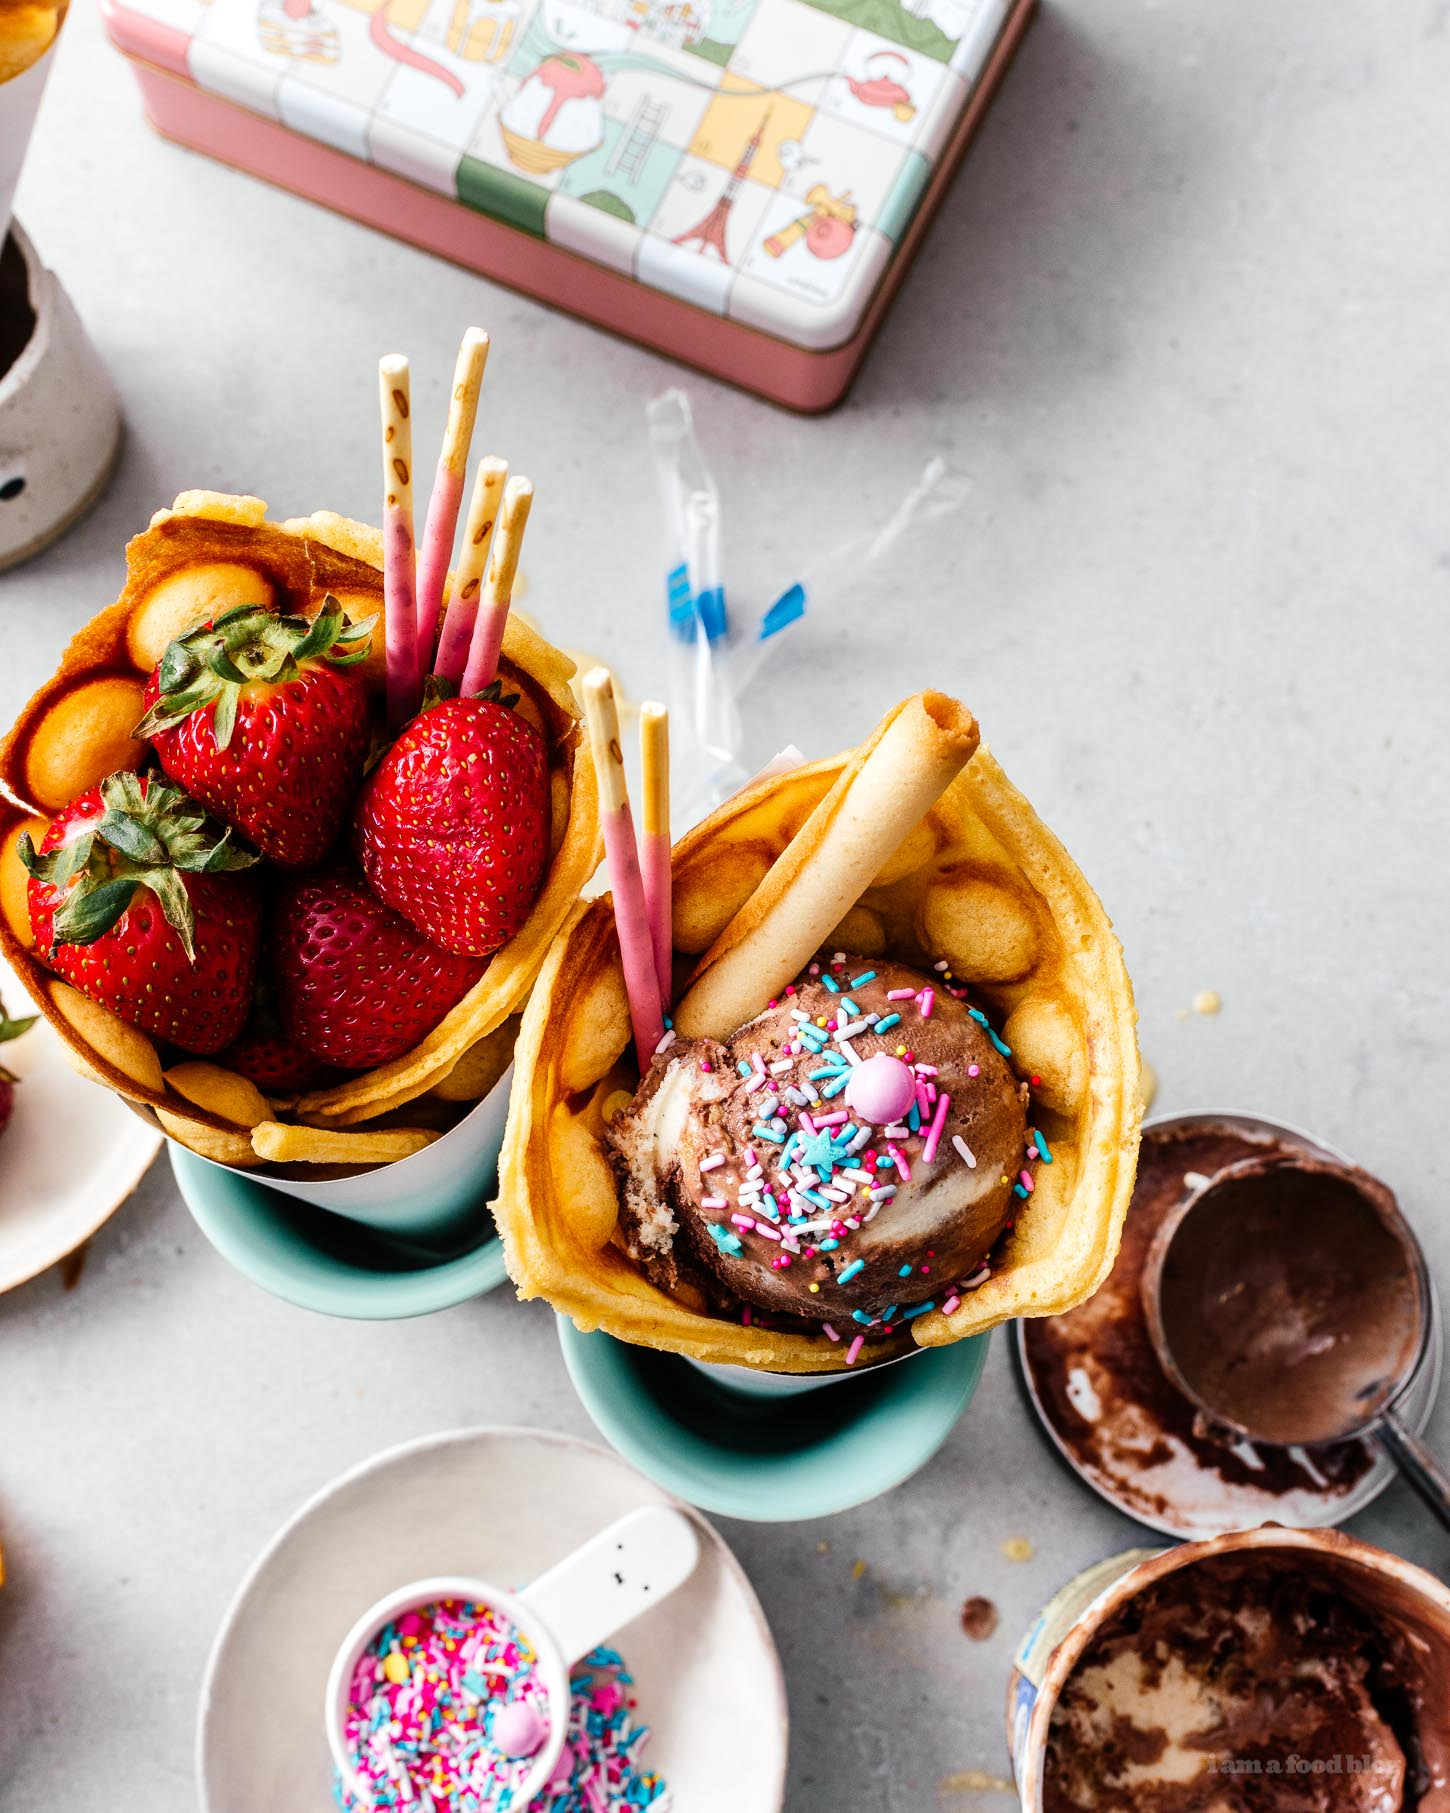 Make your own infinitely instagram friendly bubble waffle ice cream cones/puffle cones/eggloo egg waffle cones right at home. The batter comes together easily and you can fill your cones with ALL the things: ice cream, fruit, cookies, anything goes. #bubblewaffle #bubblewafflecones #hongkongbubblewaffles #pufflecone #eggloo #eggwaffle #recipes #dessertrecipes